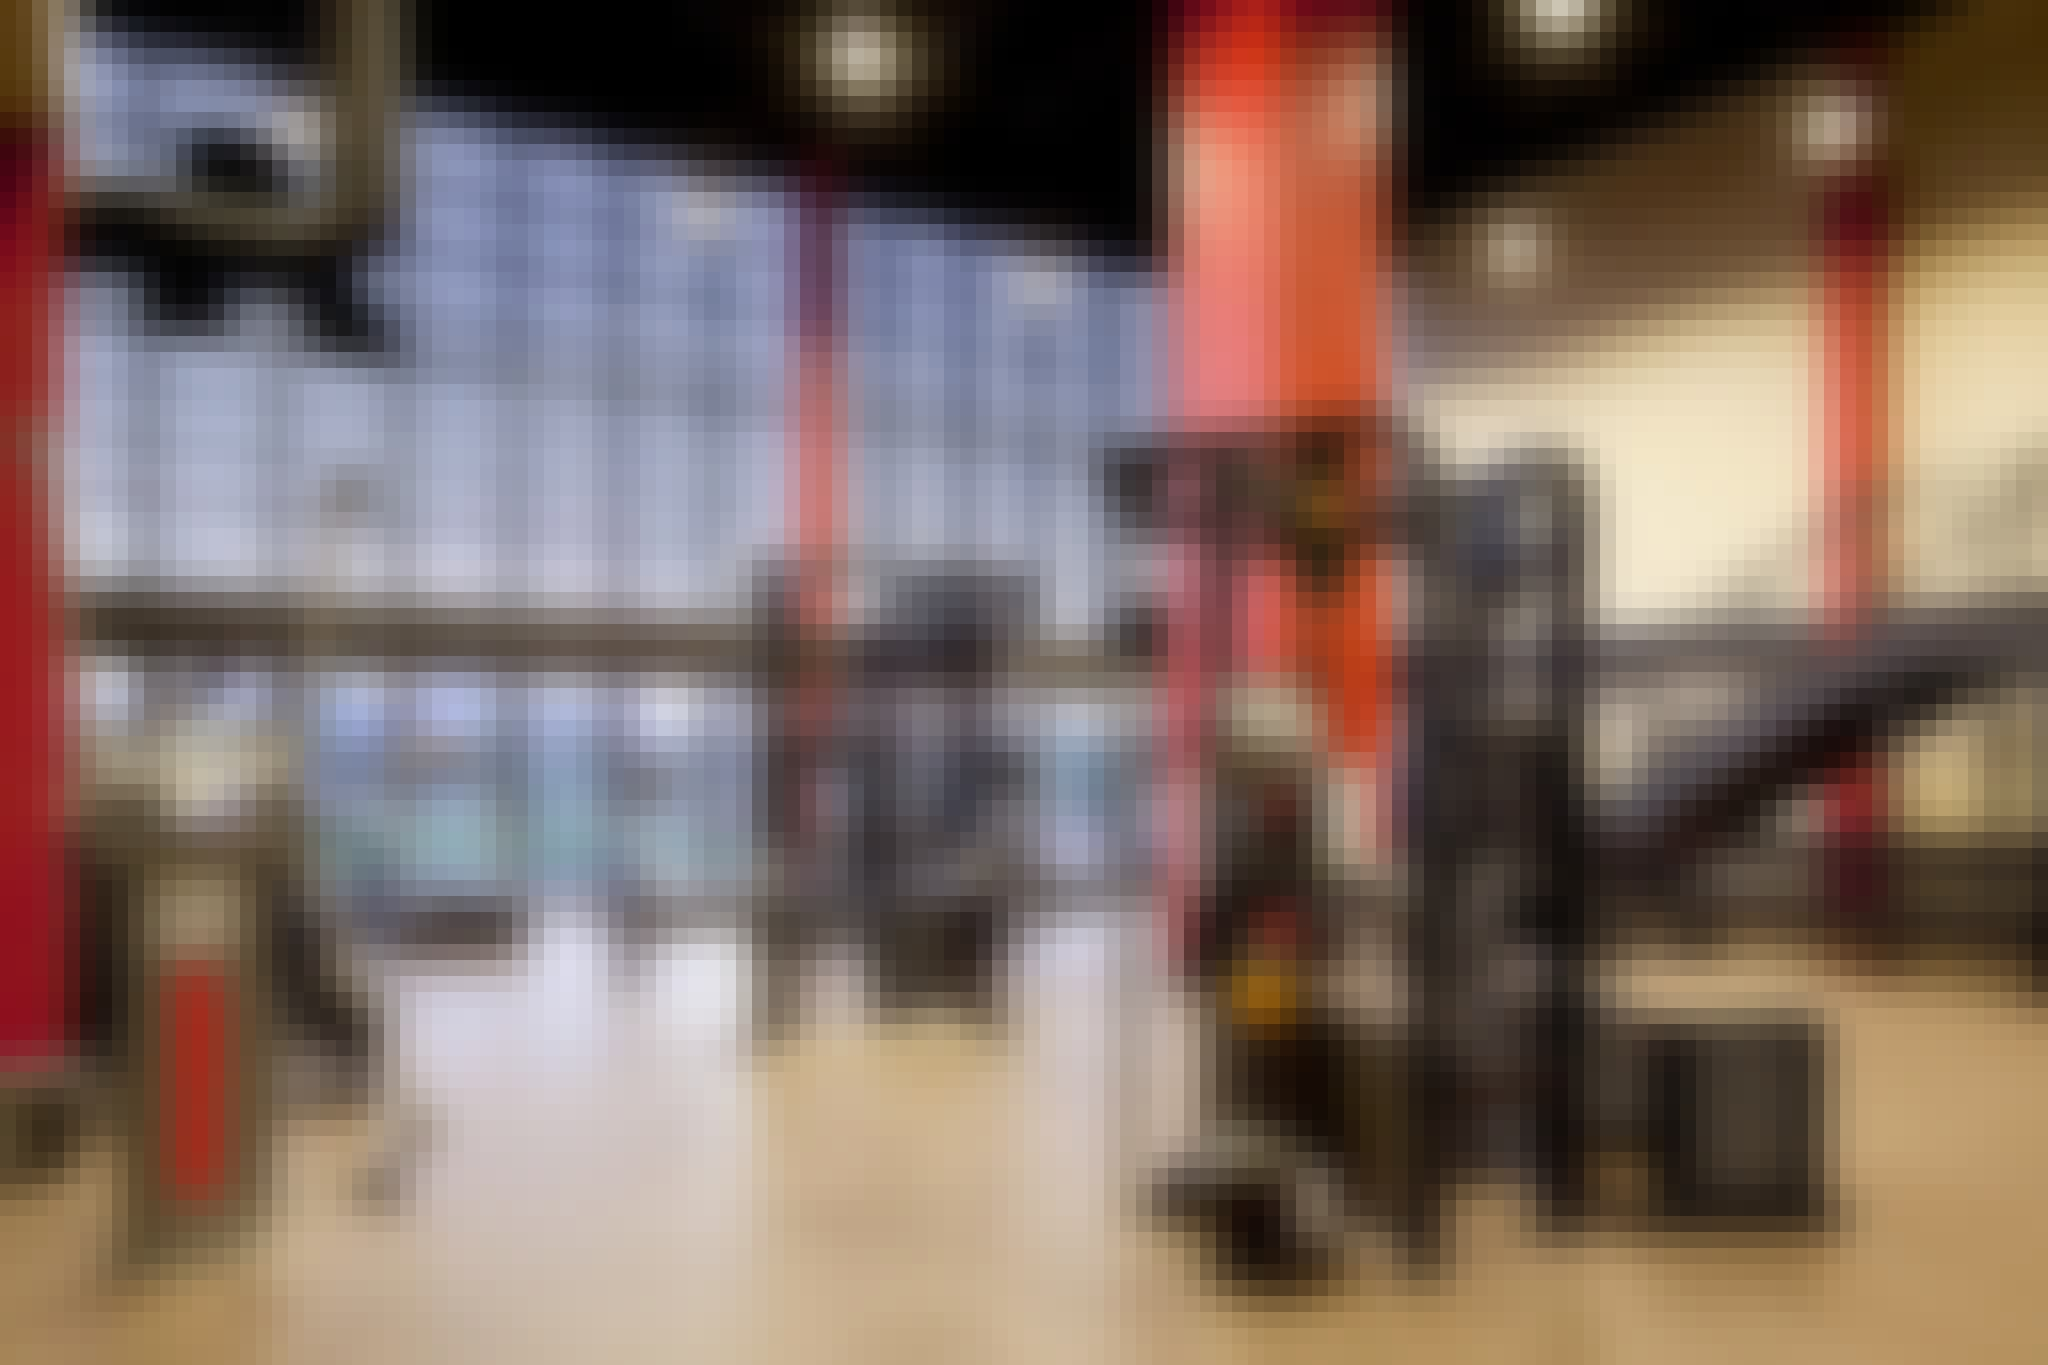 fitness center design with opening glass walls